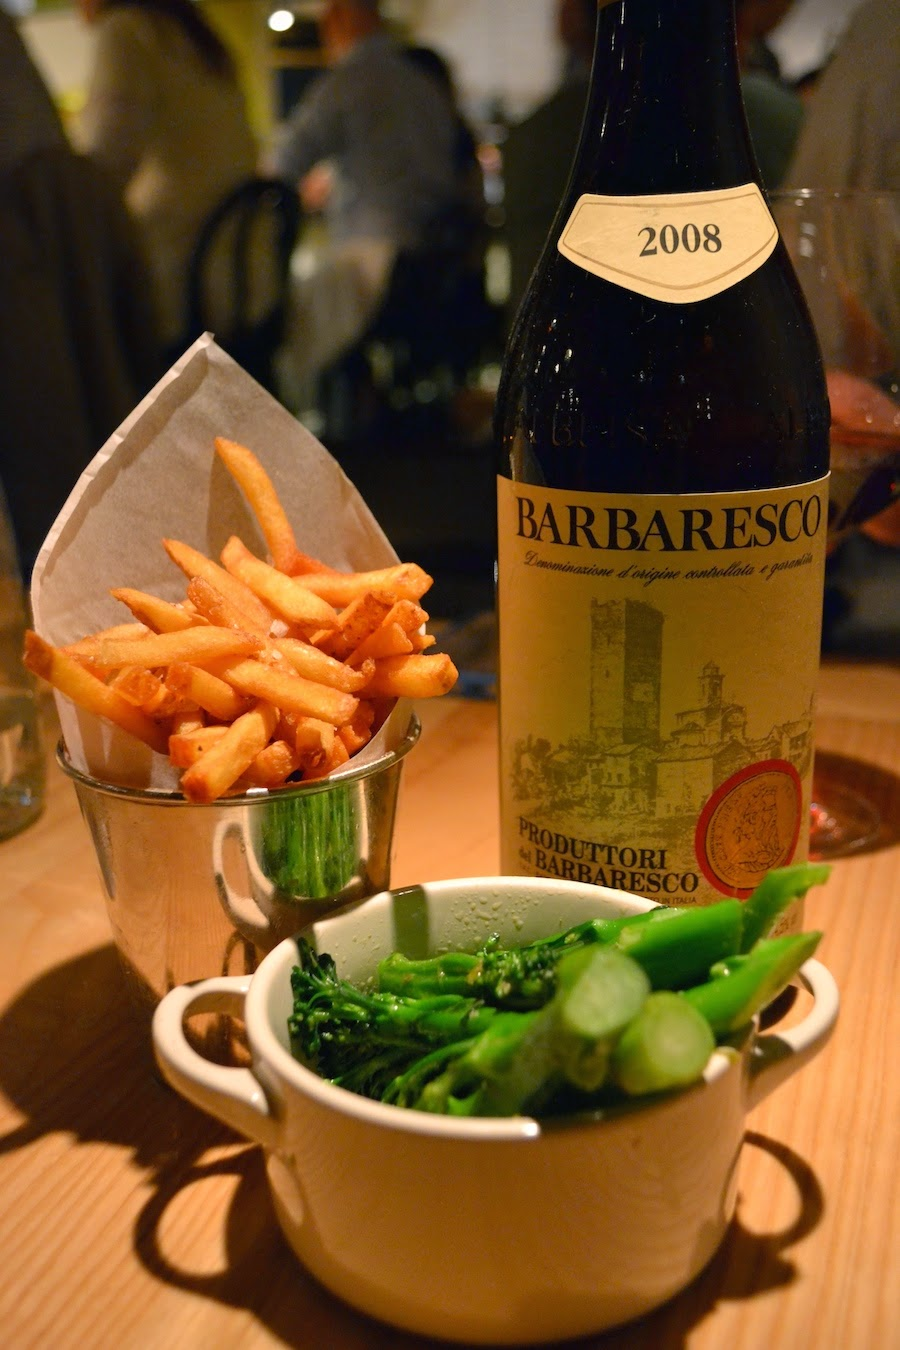 Our wine and sides of purple-sprouting broccoli and french fries